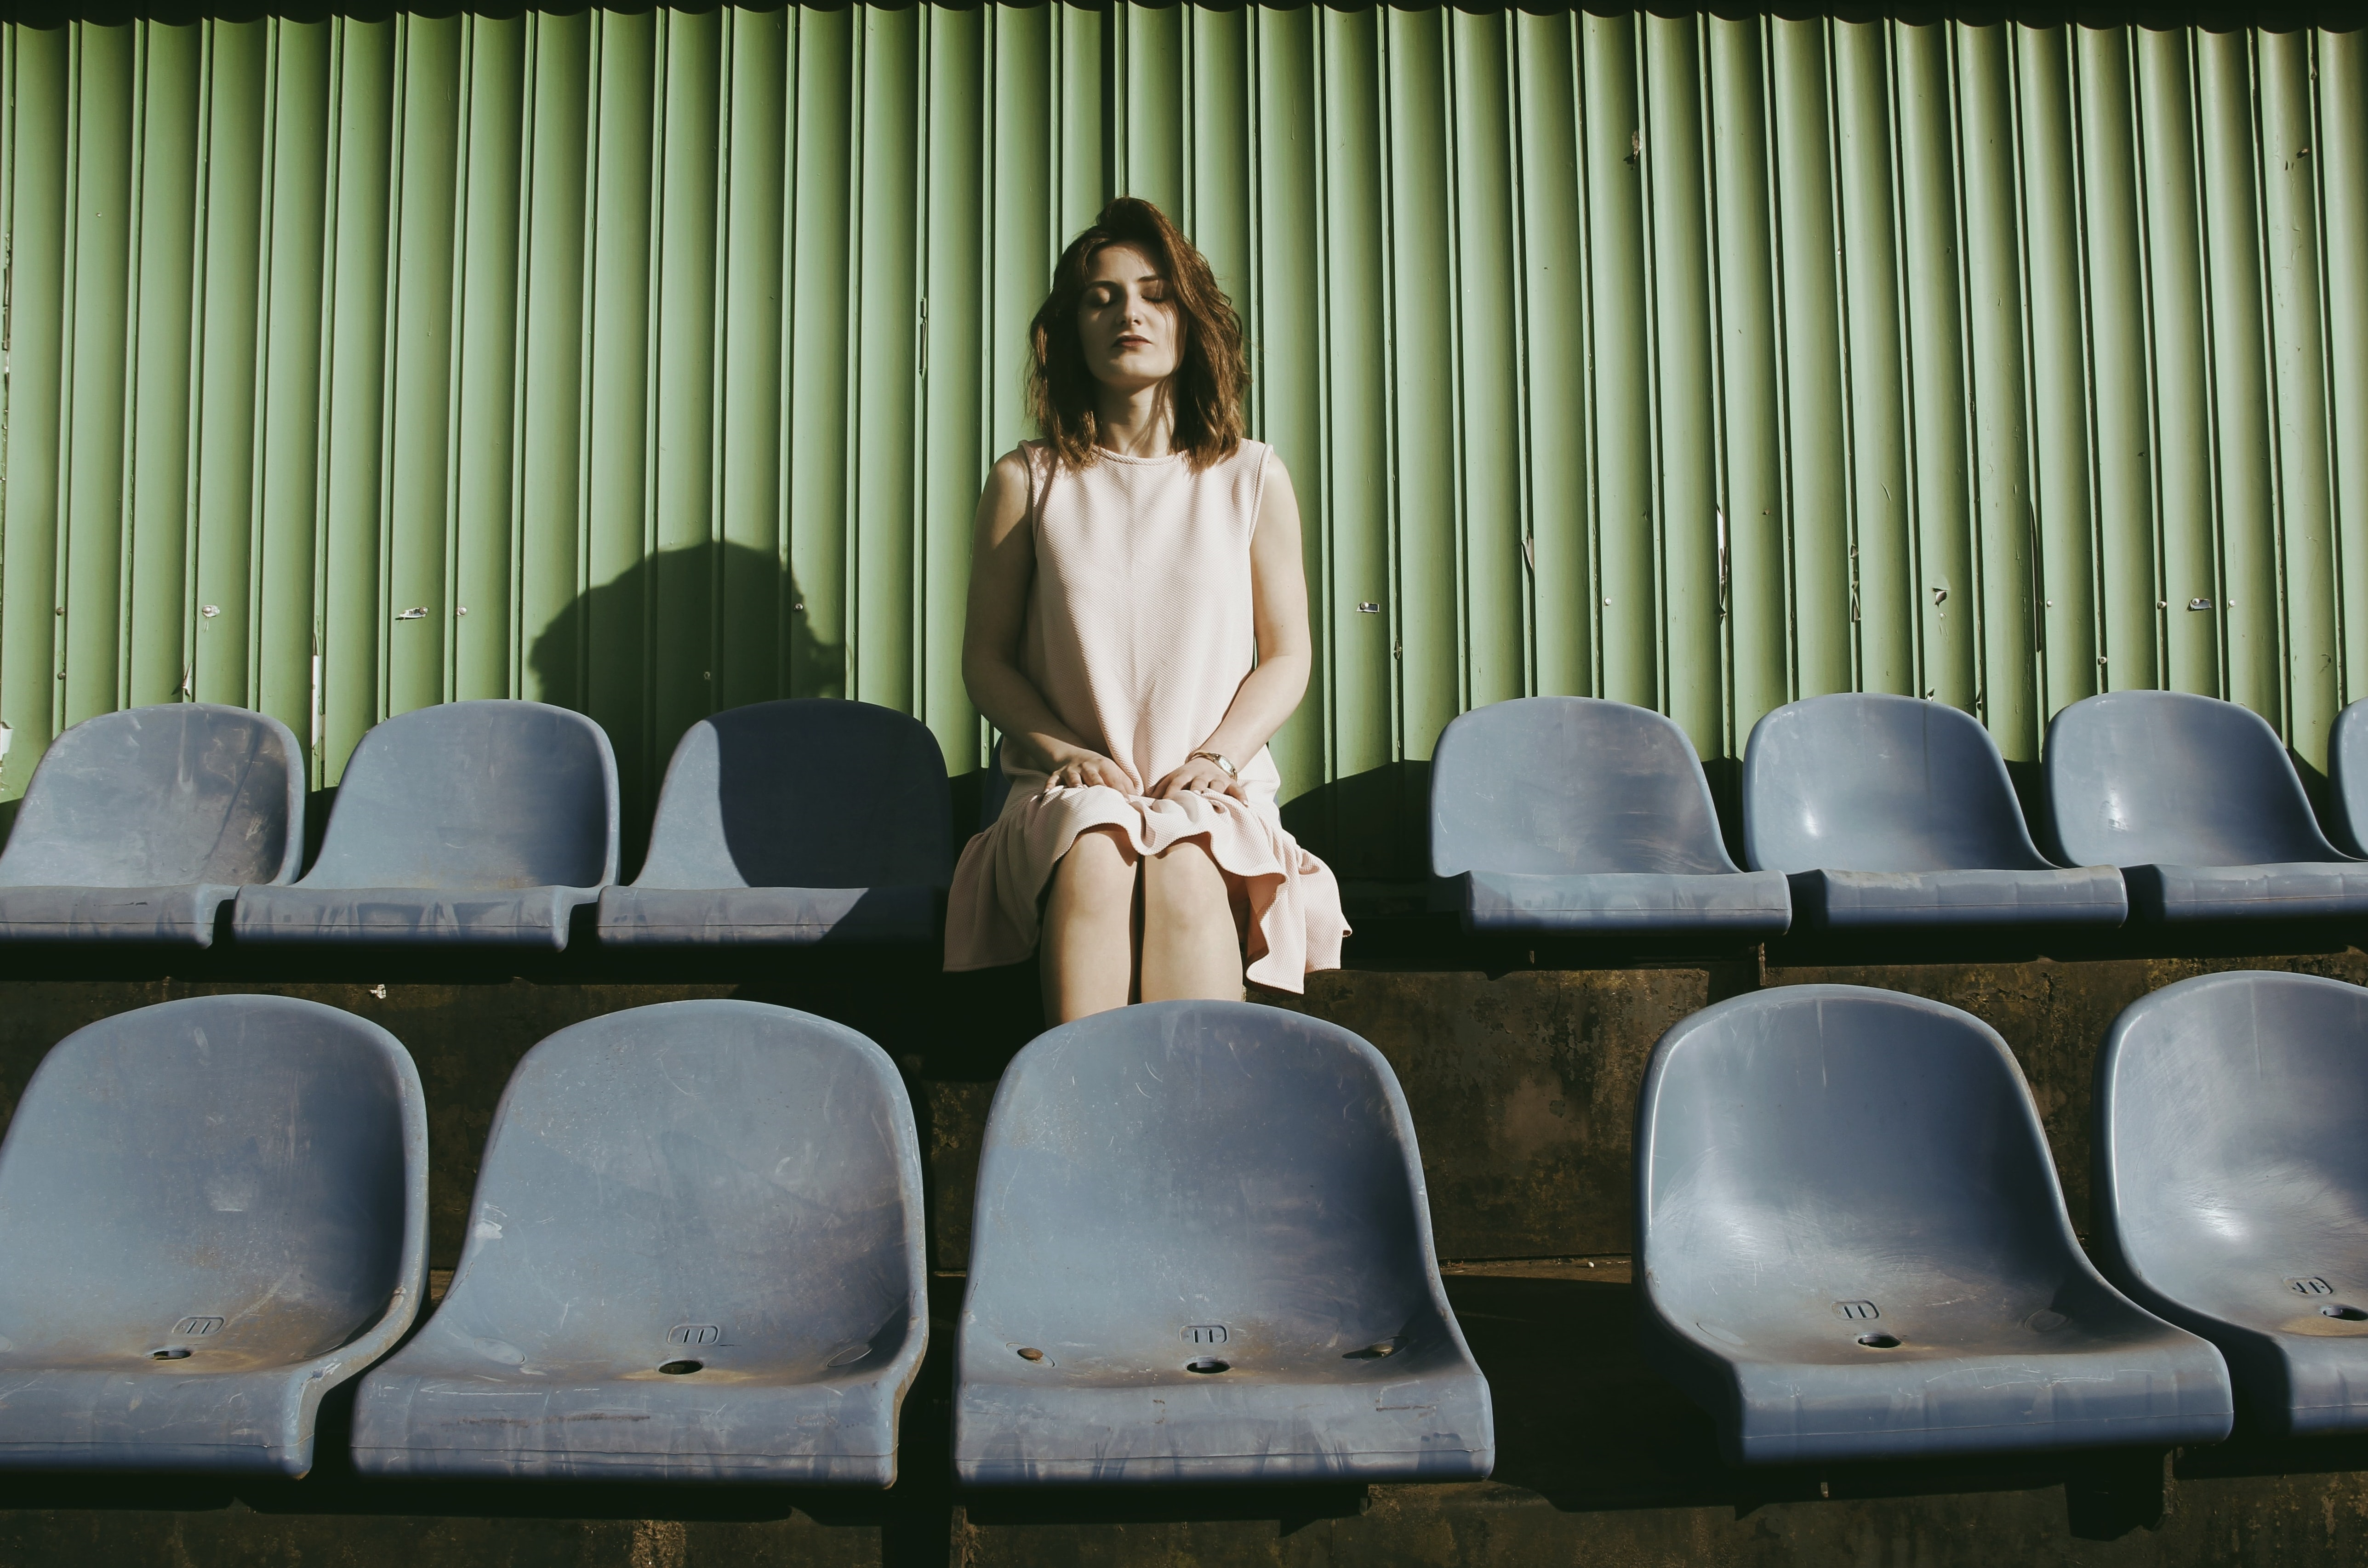 A woman in a dress sits in a row of chairs before a green wall